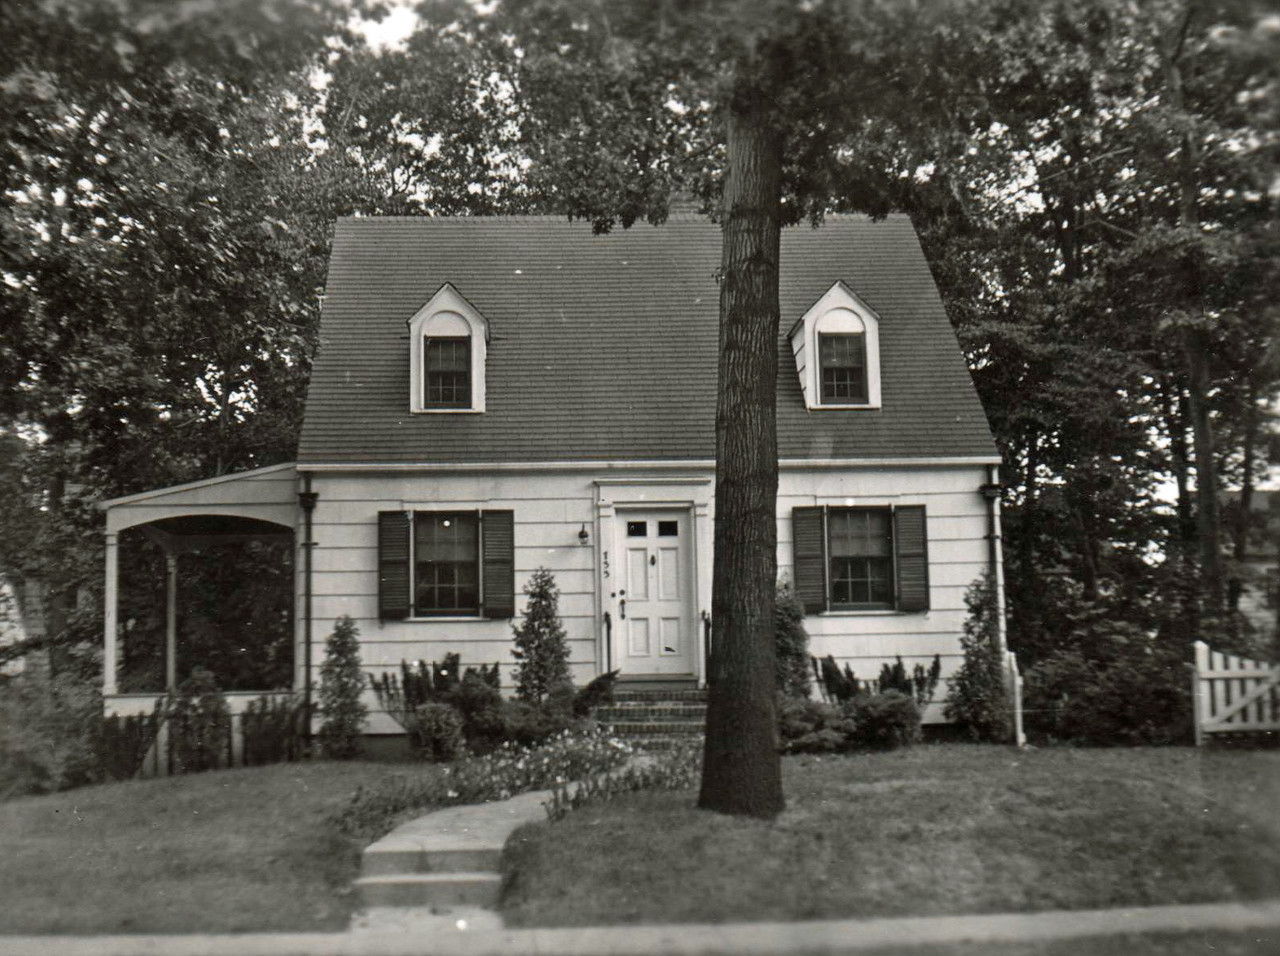 733 GREENWOOD ROAD 1939